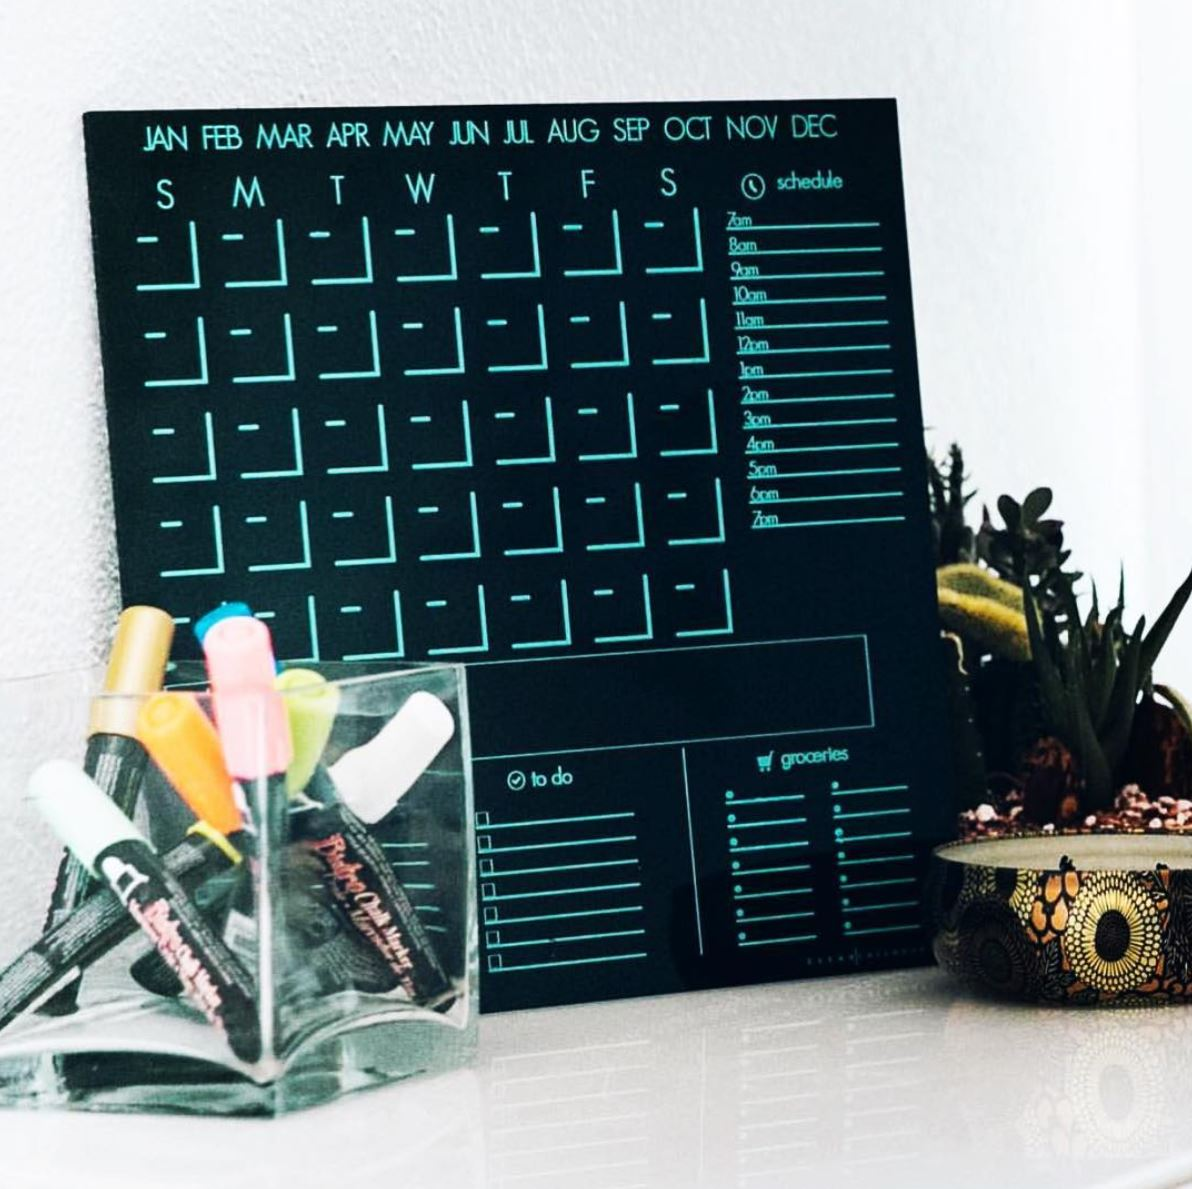 The Stay-At-Home Calendar